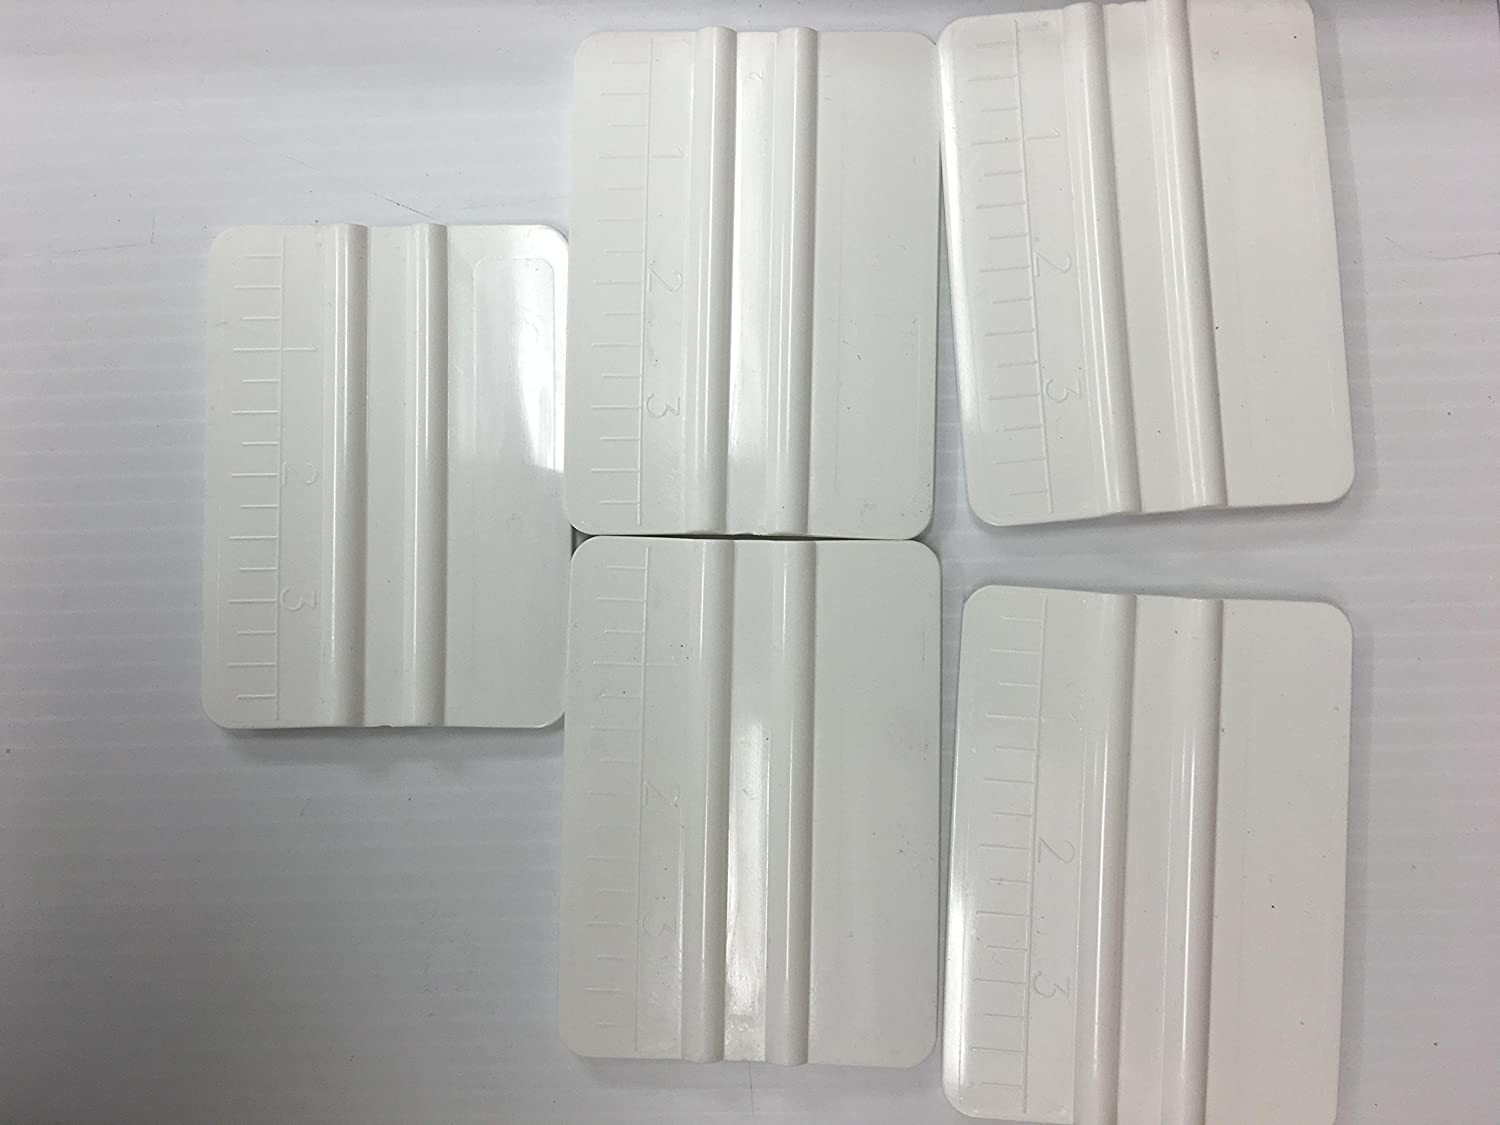 White Squeegee with built in ruler - 5 Pack Lidco 4336976643